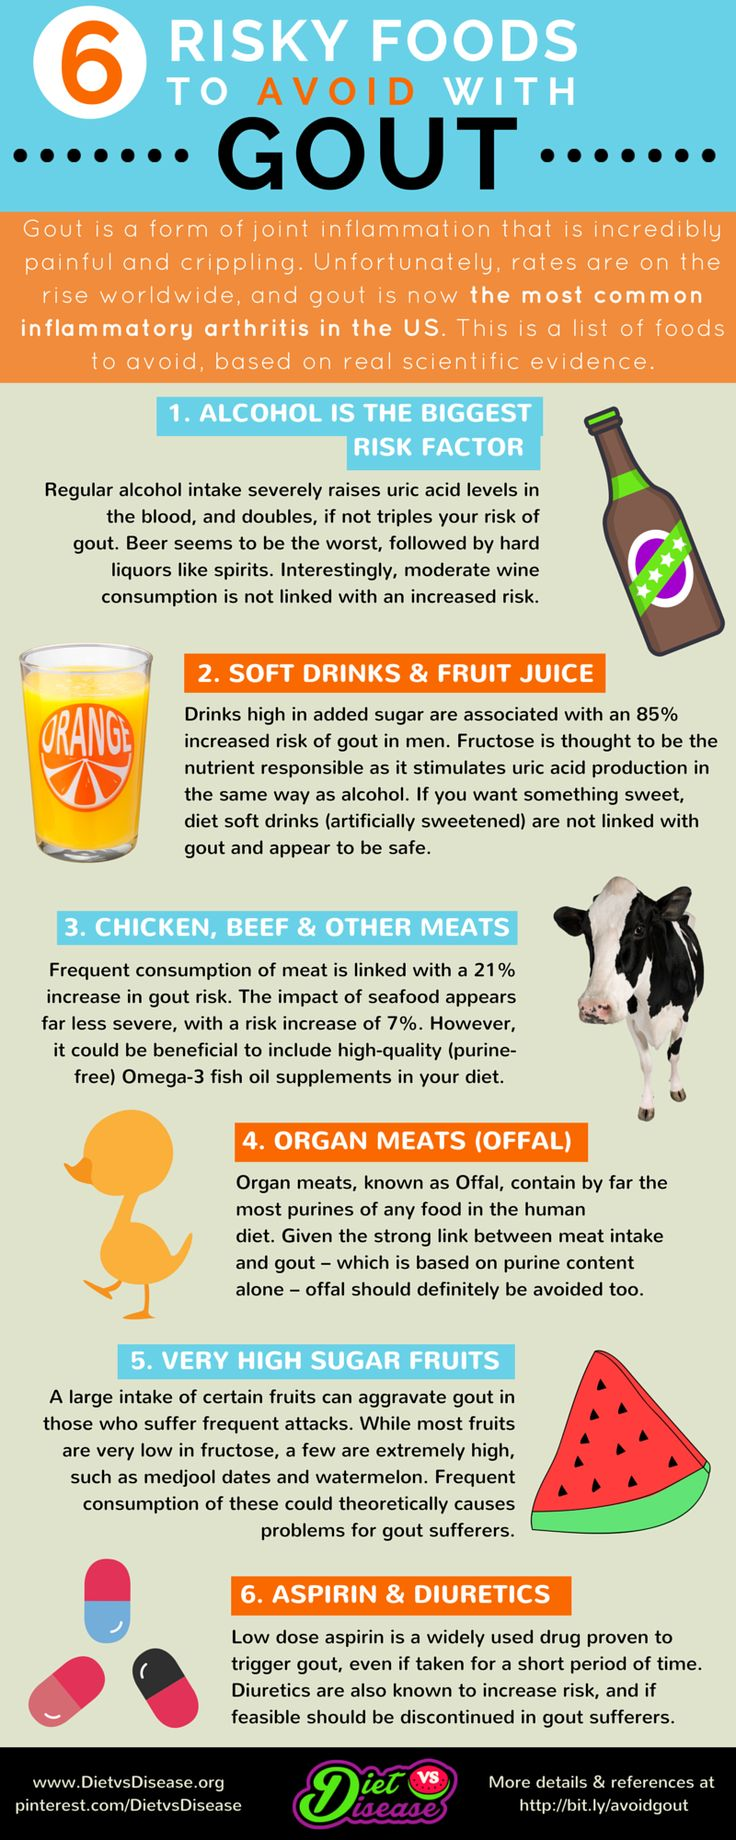 6 Risky Foods To Avoid With Gout (No. 5 Was Unexpected